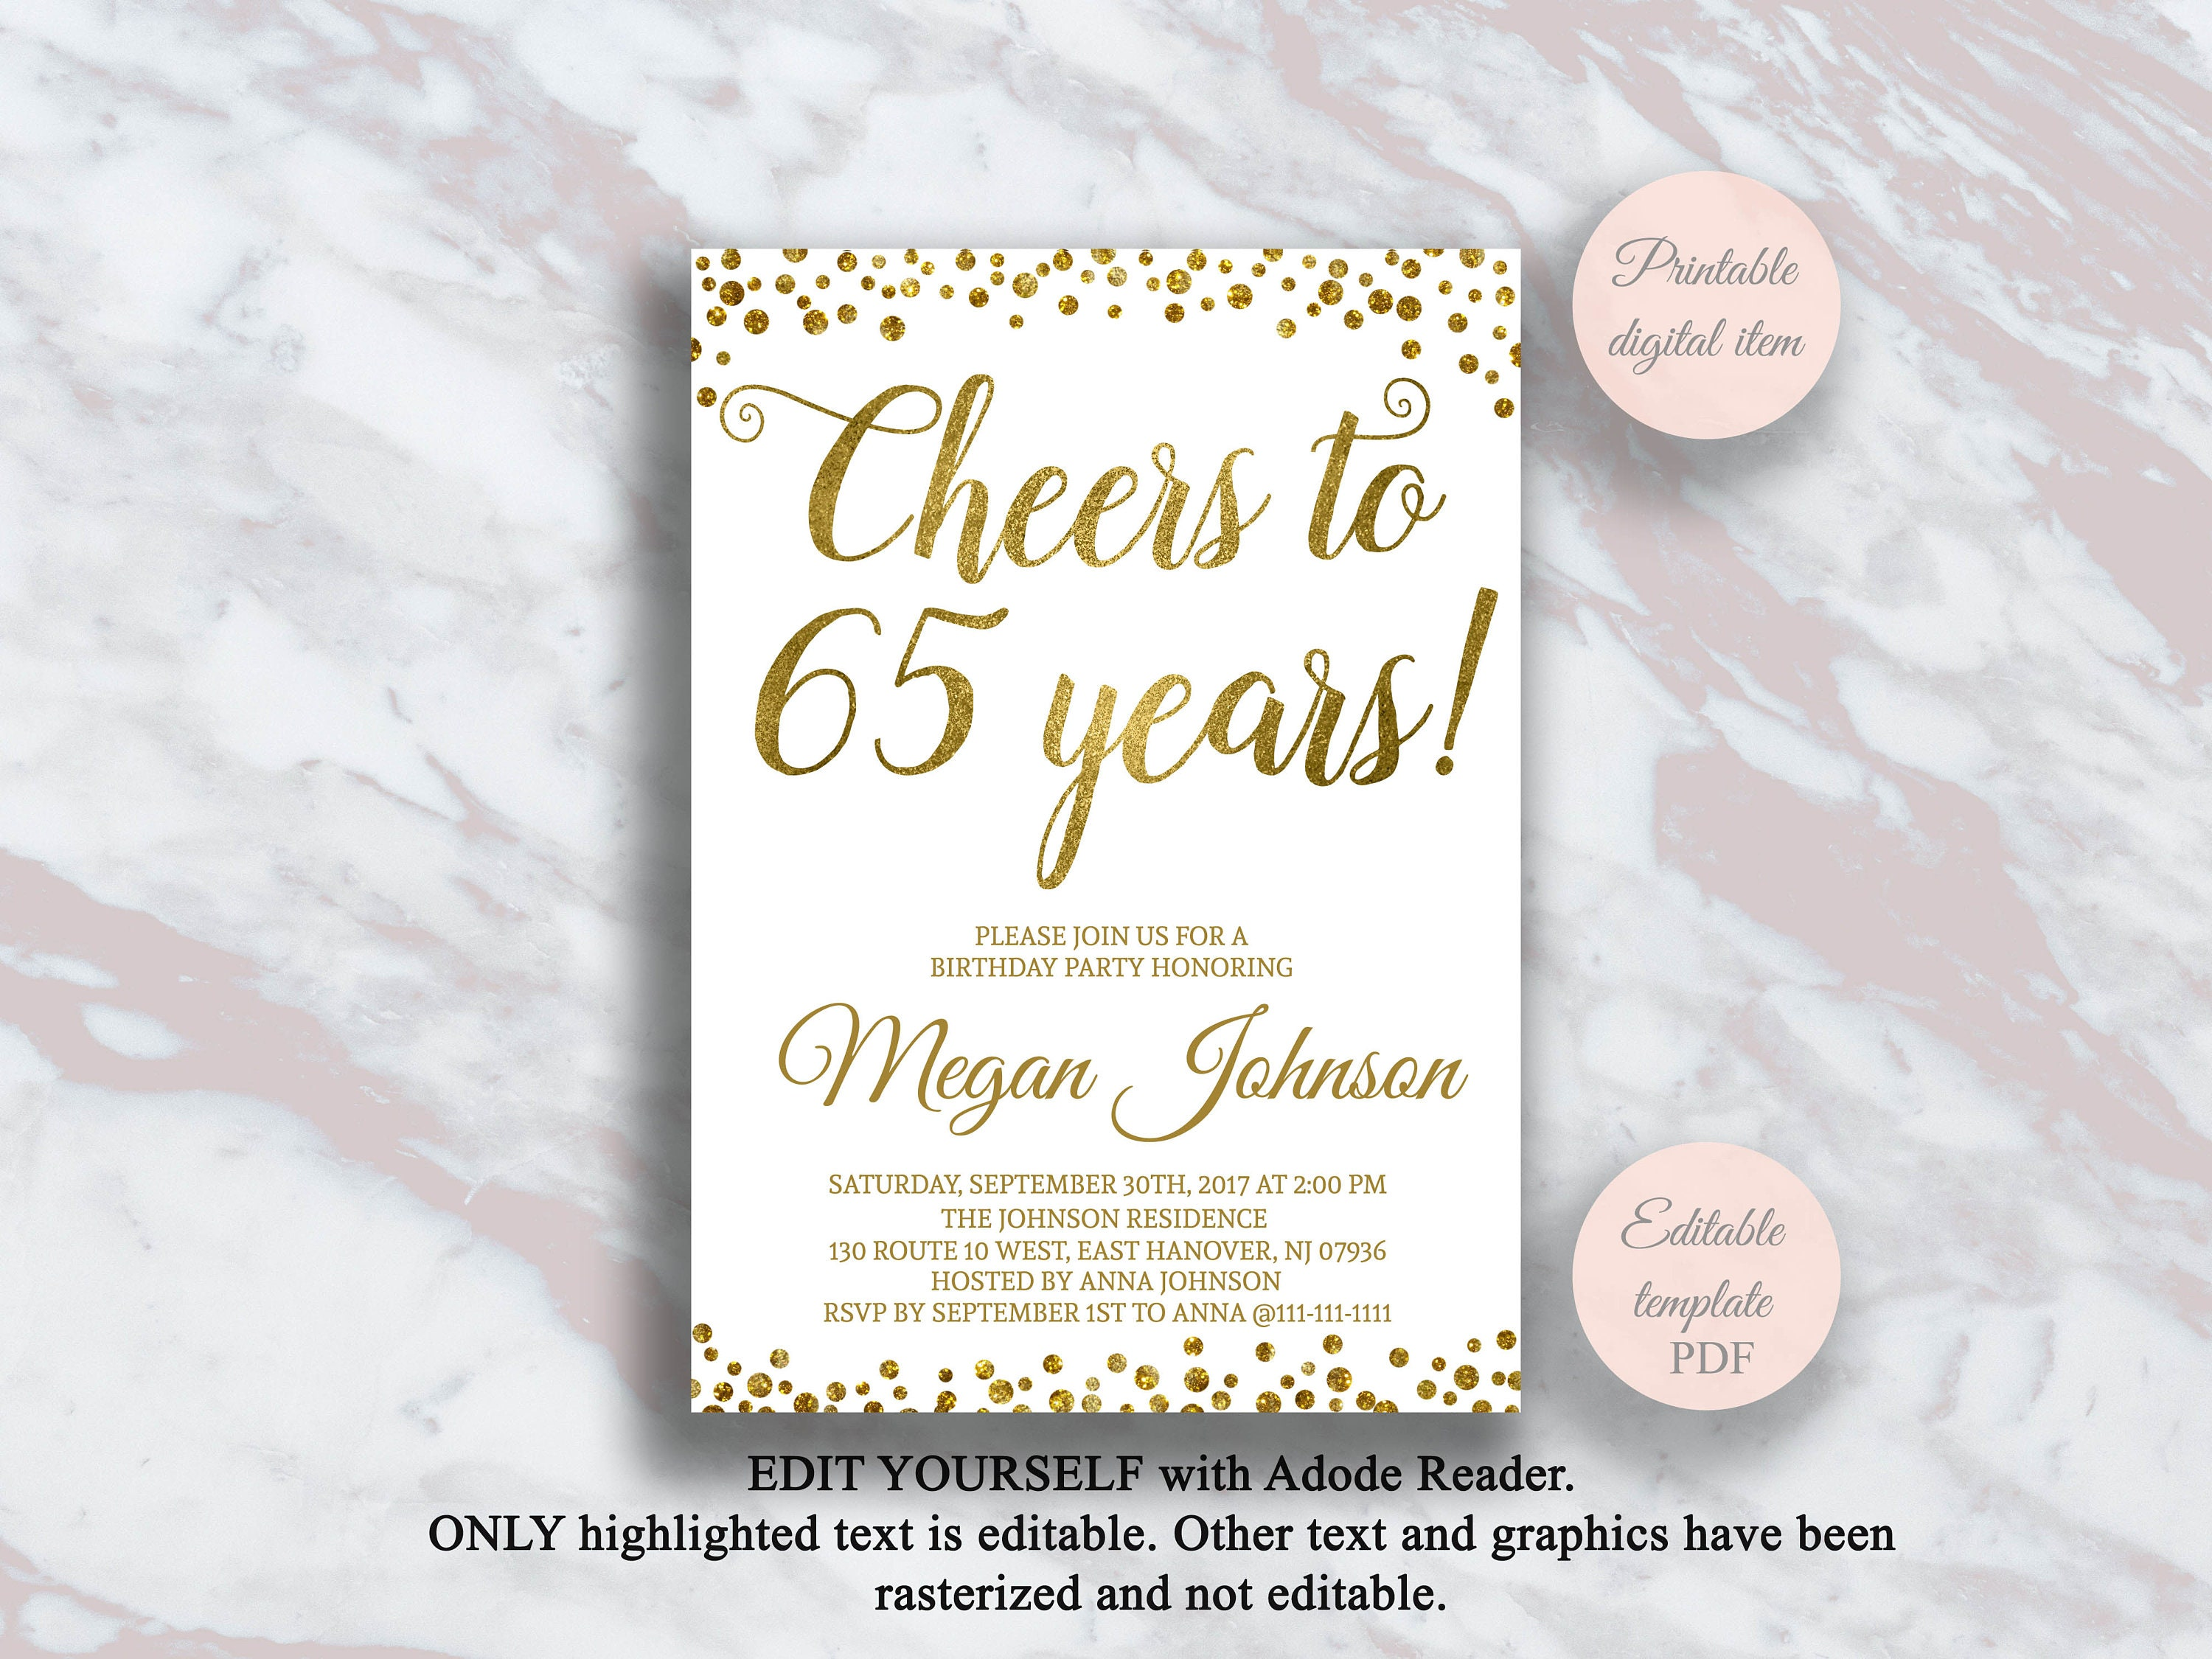 Editable 65th Birthday Invitation Cheers To 65 Years Gold